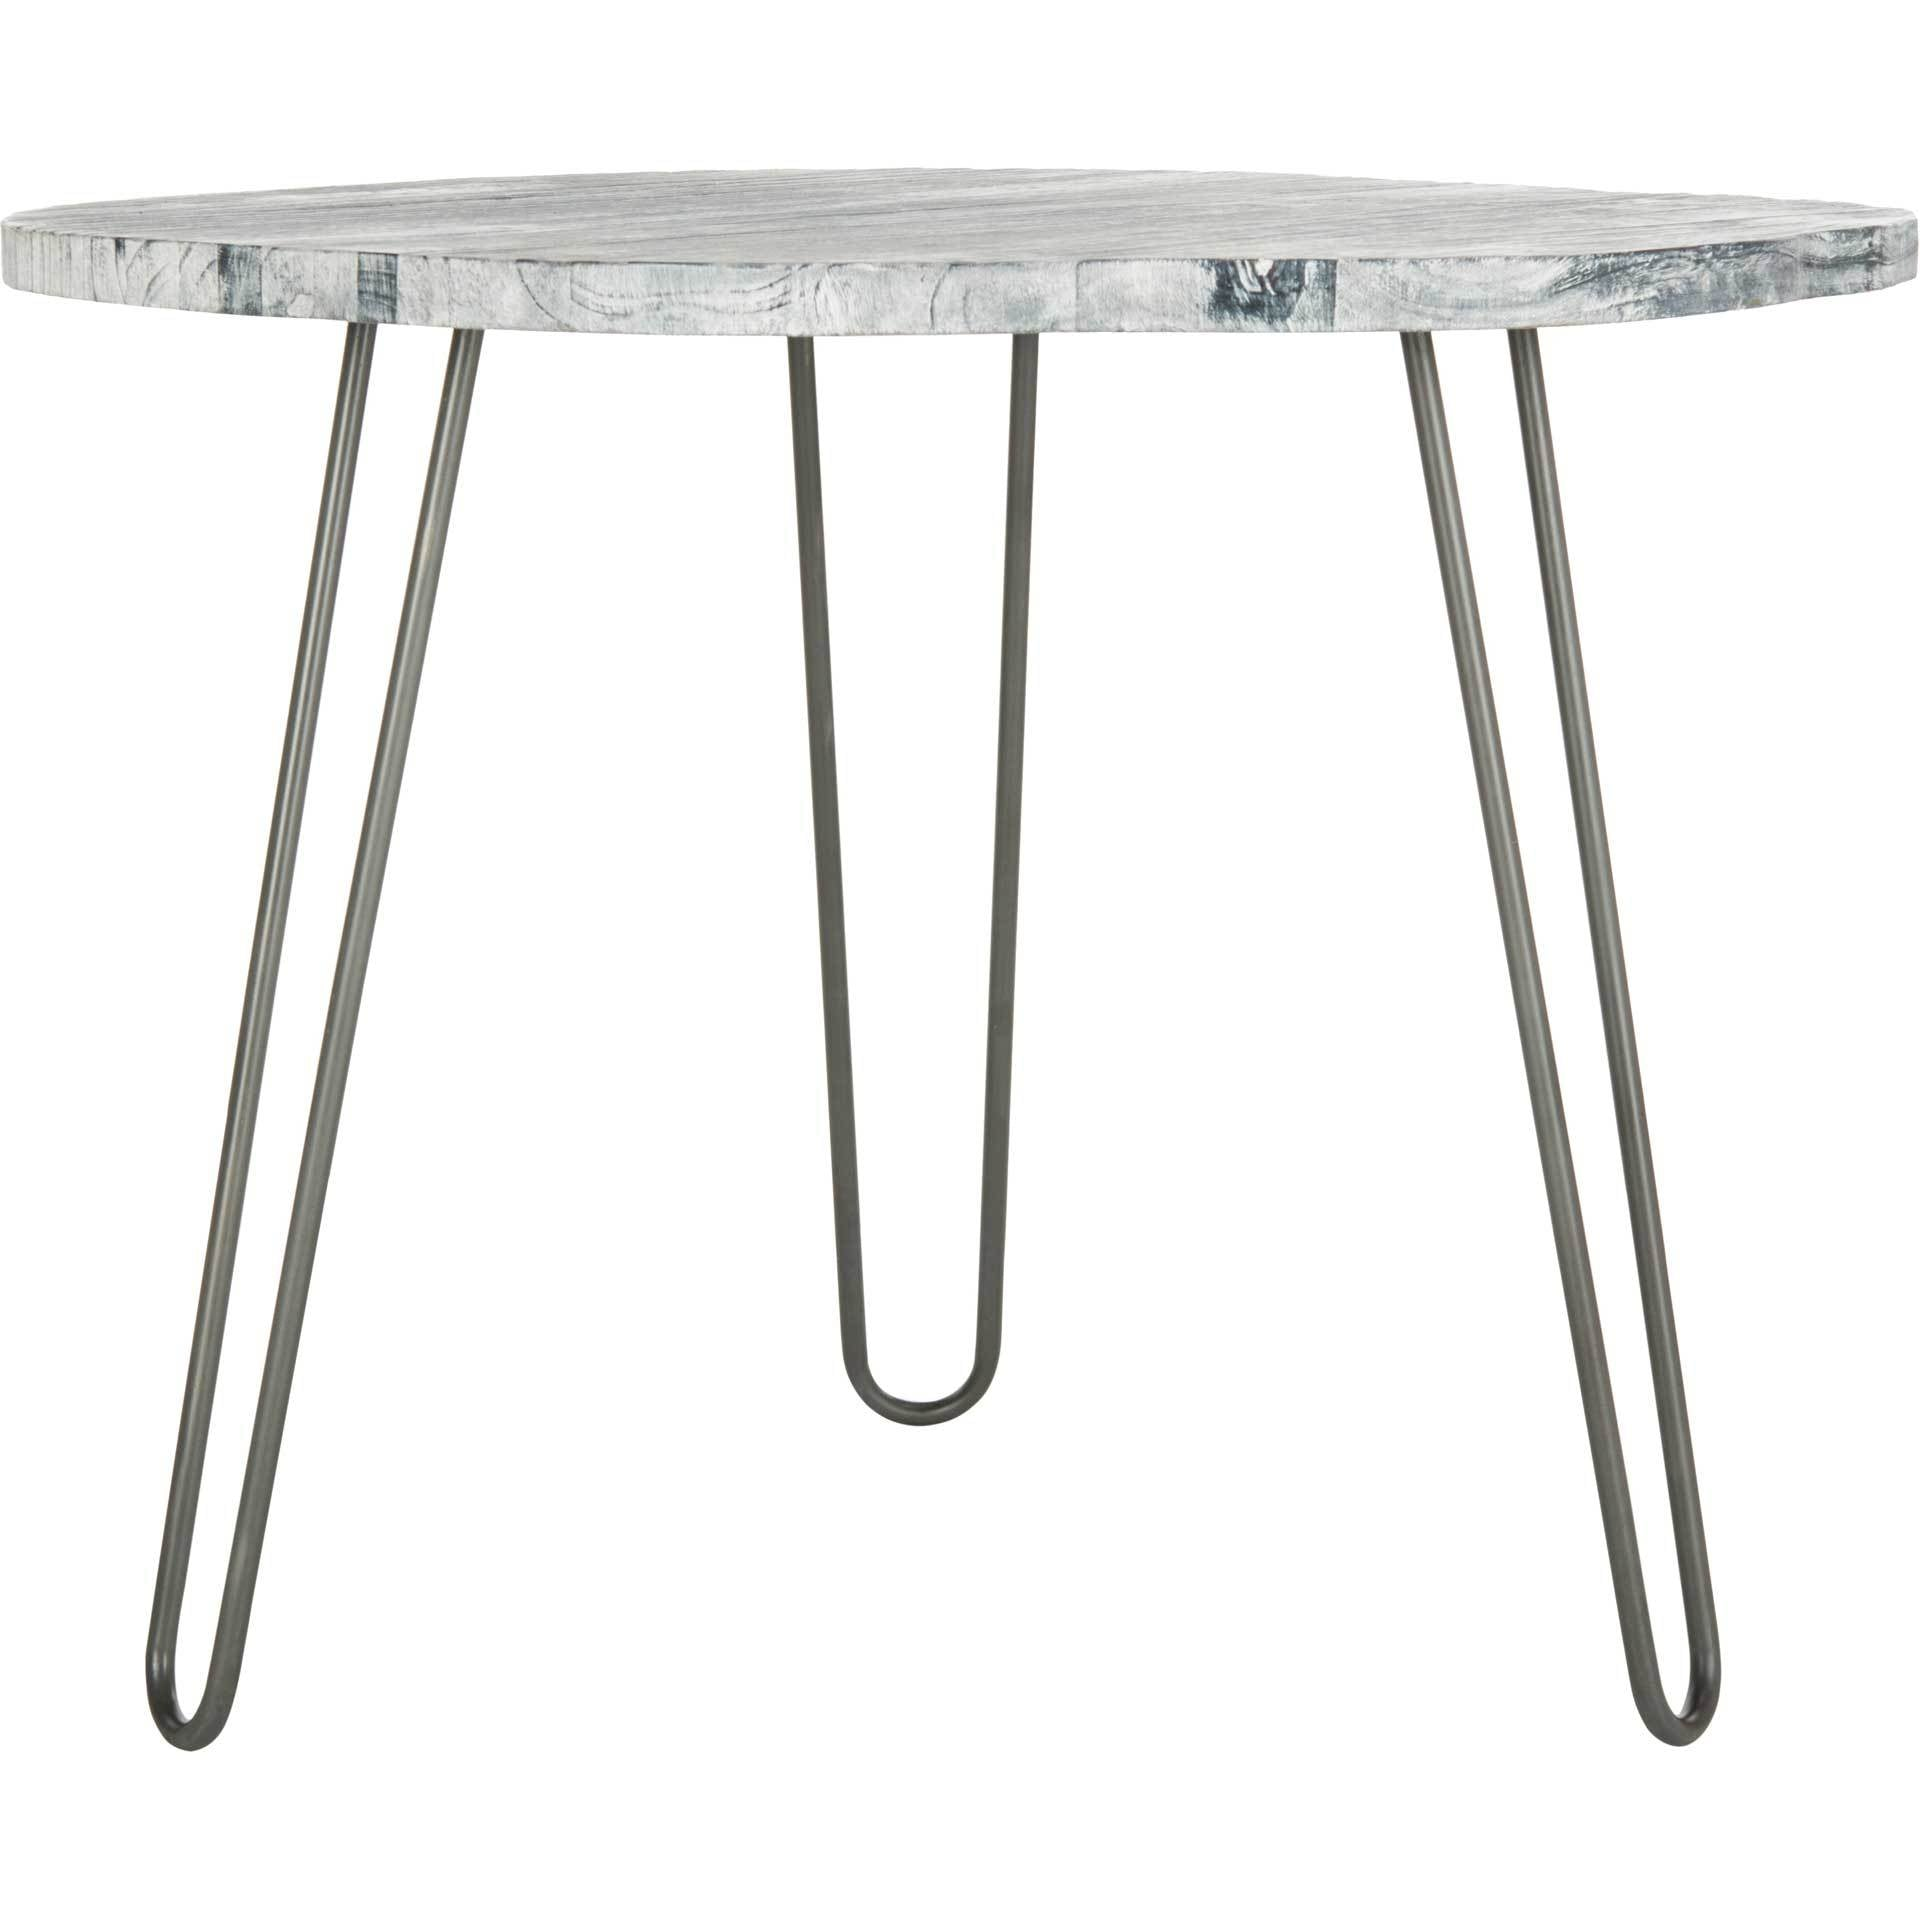 Miller Dining Table Gray/White Washed